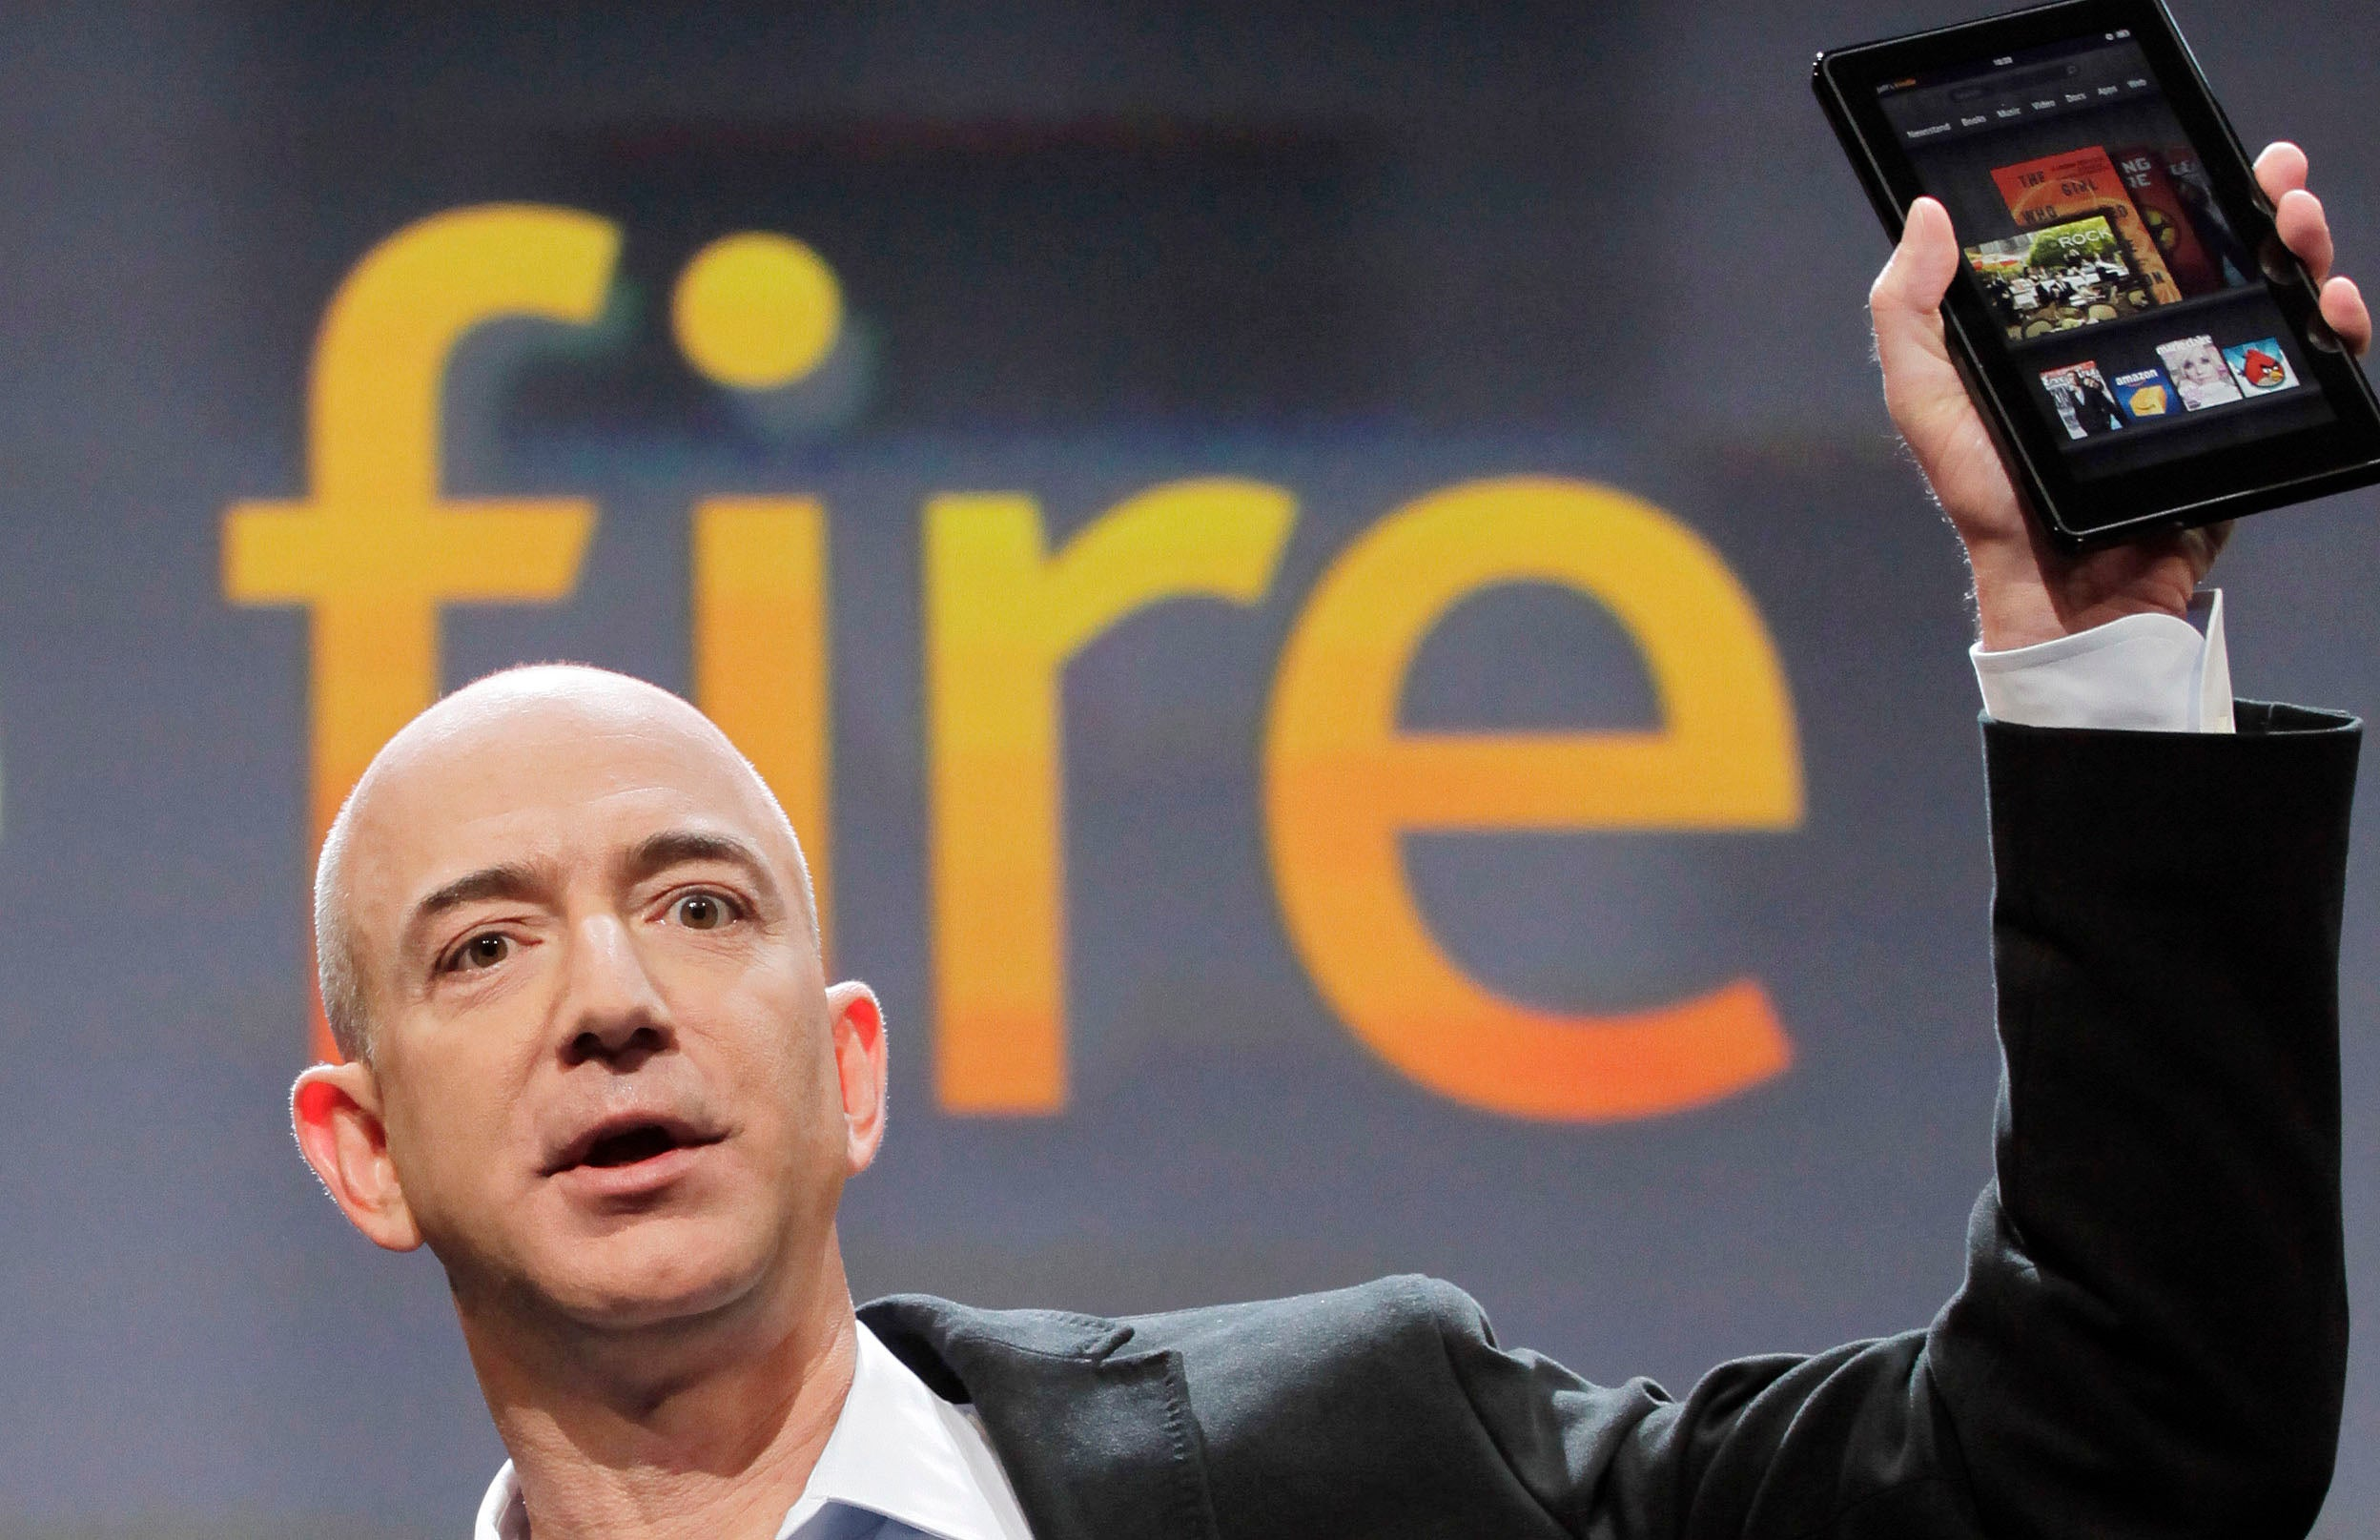 How Jeff Bezos Became the World's Richest Man | Investopedia